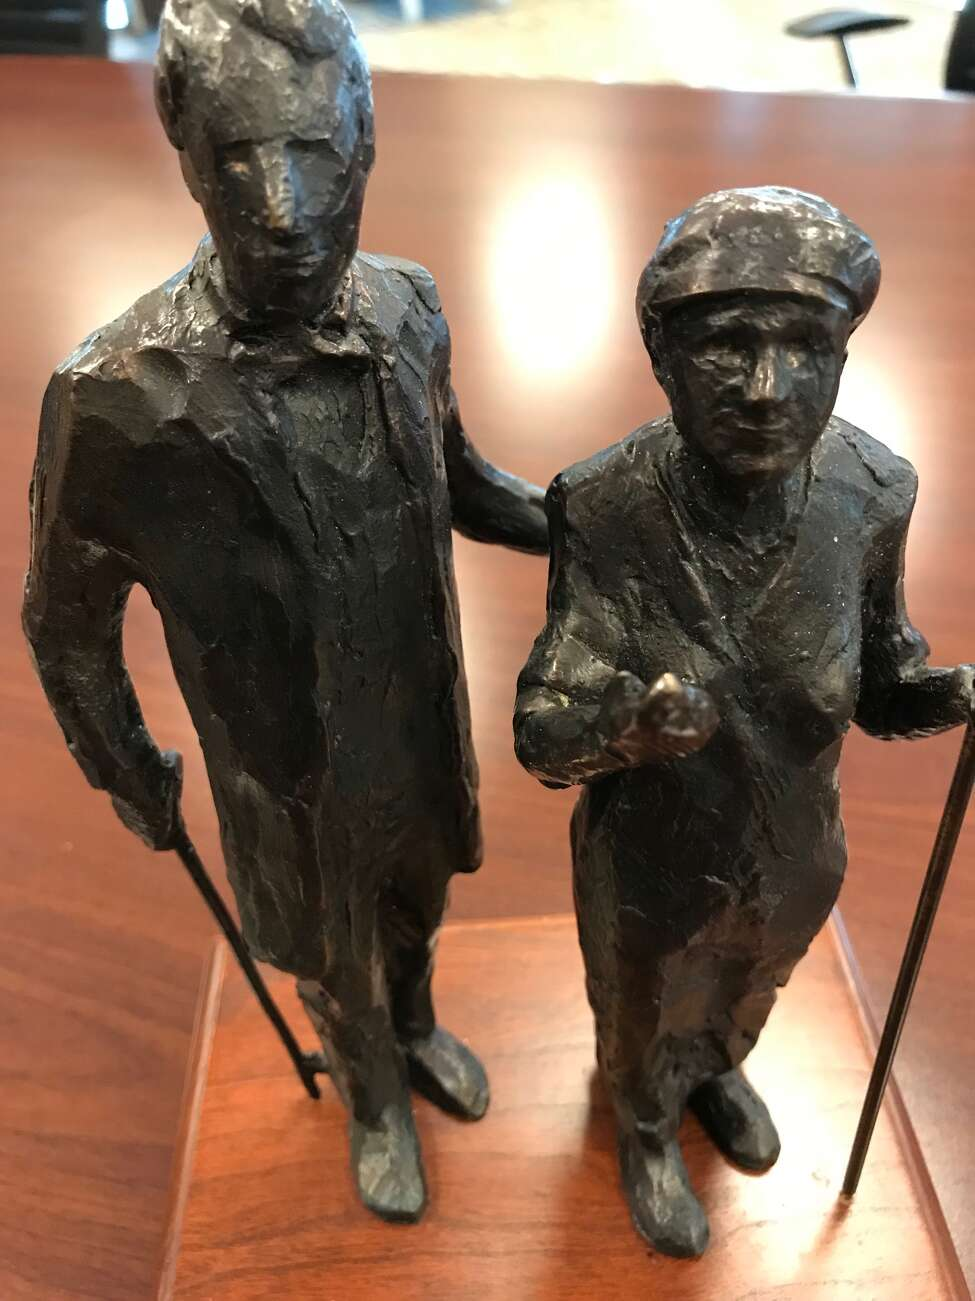 Model of Harriet Tubman and William Henry Seward statue by sculptor Dexter Benedict. (Paul Grondahl photo)